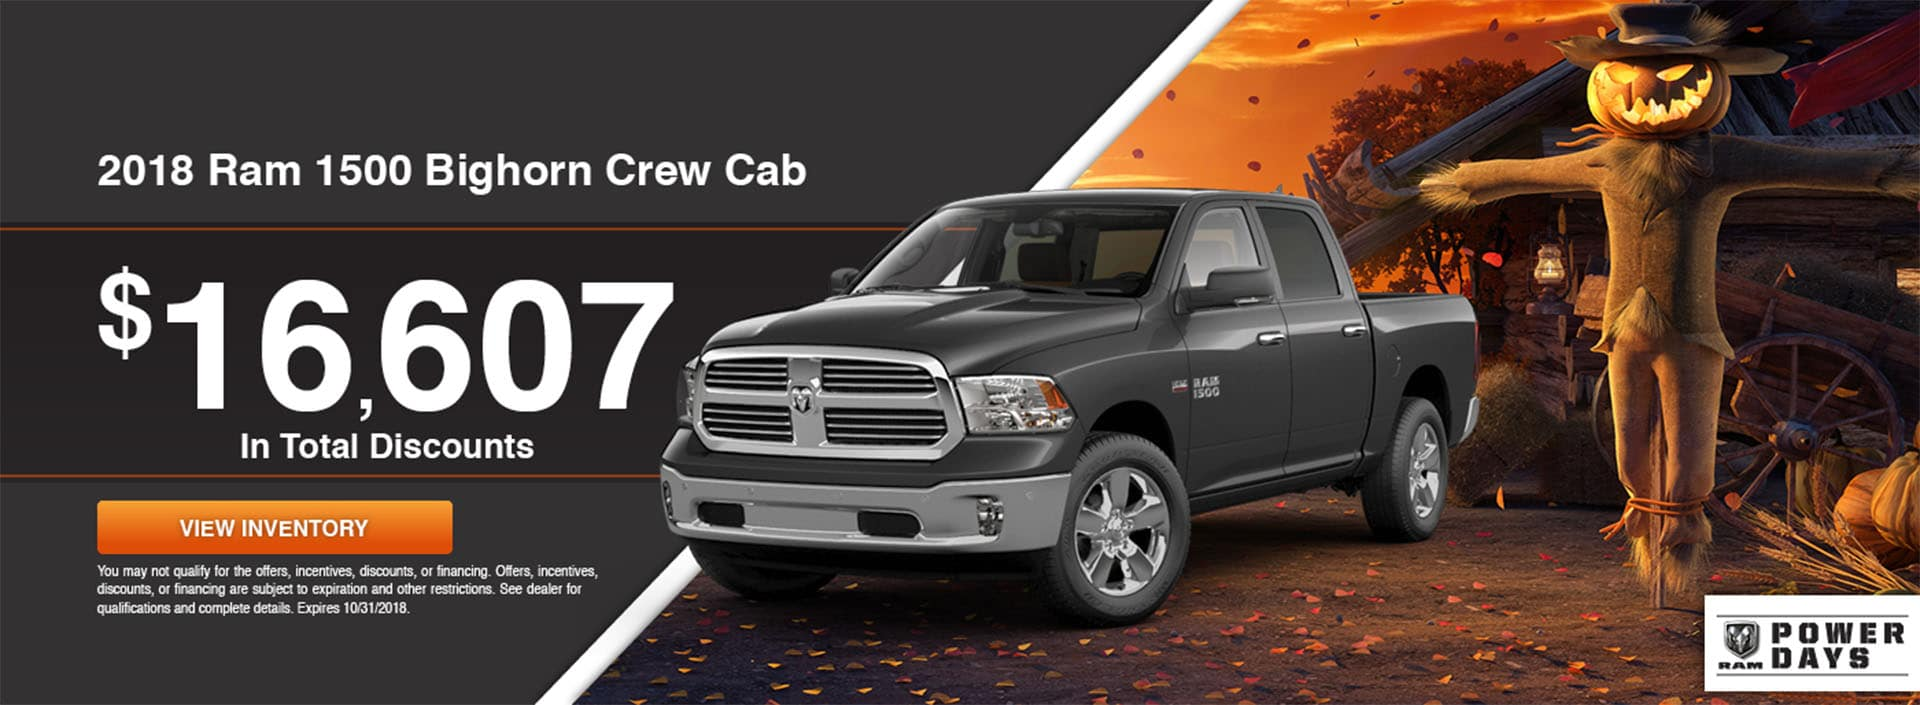 2018 Ram 1500 Bighorn Crew Cab Special at Waseca RAM in Waseca, MN